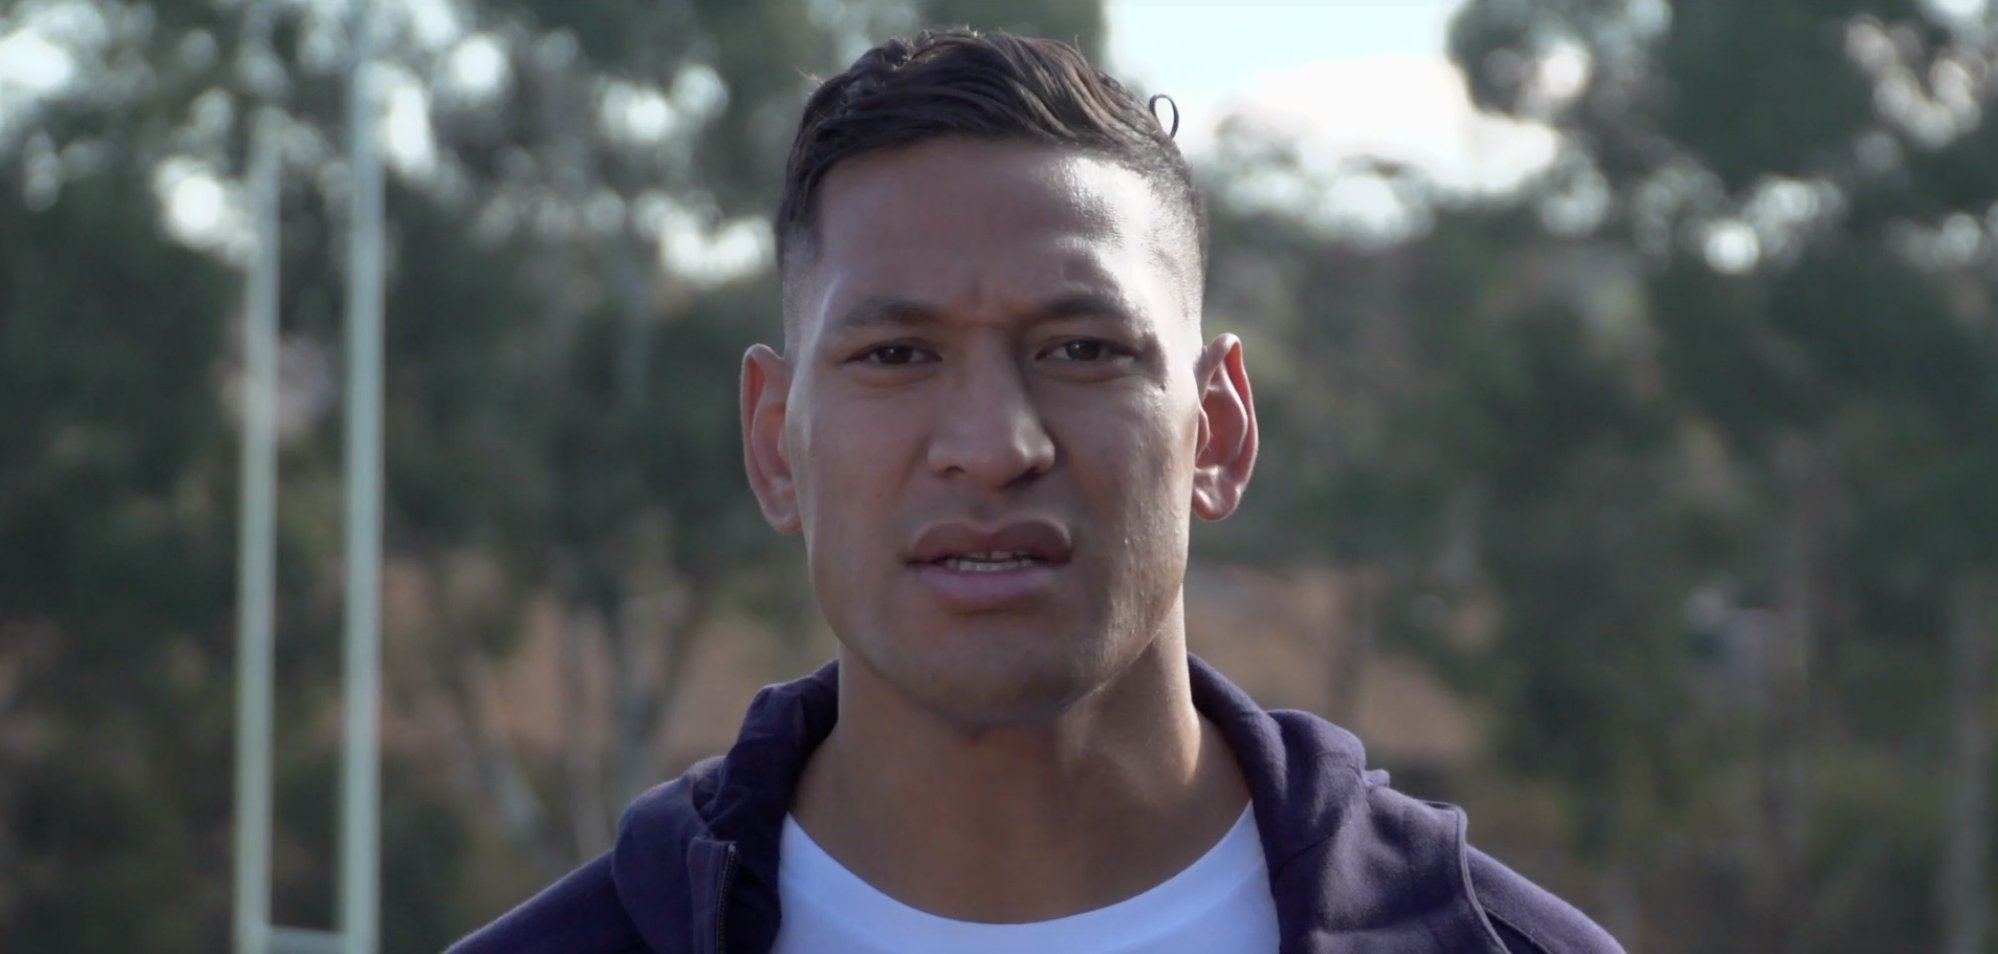 VIDEO: Israel Folau is now asking people for money to help him sue Australian Rugby